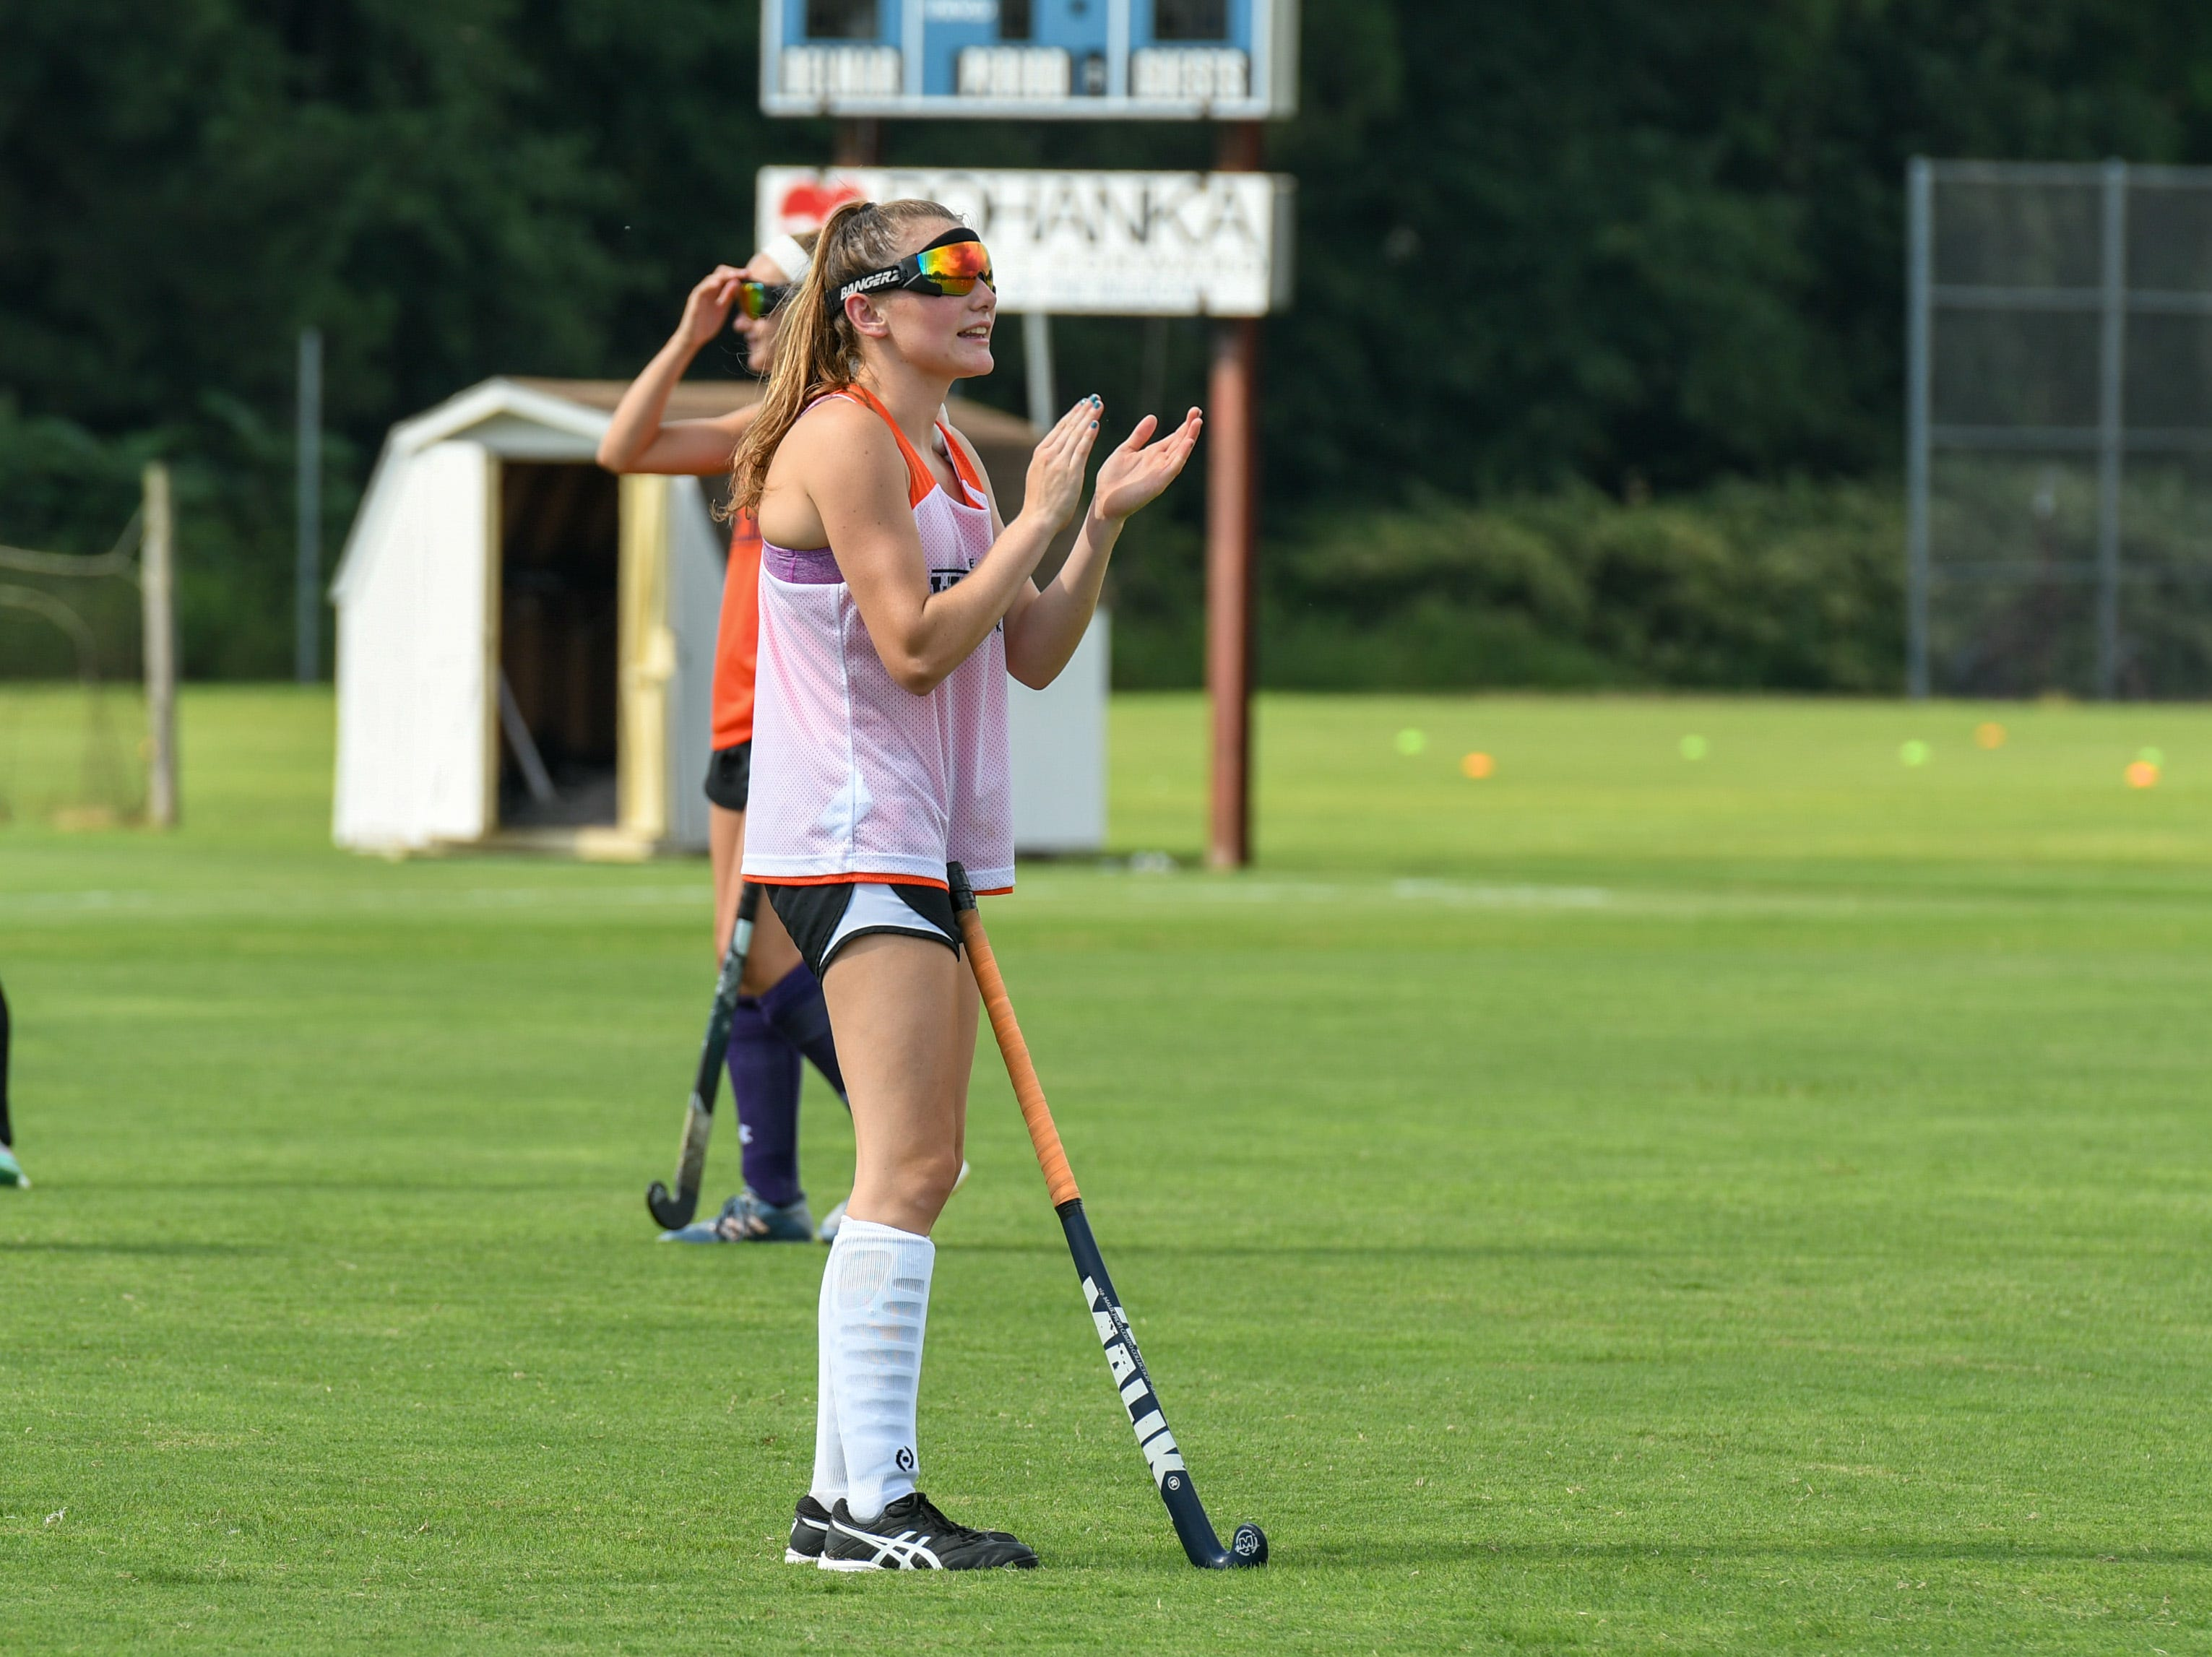 Senior Hailey Bitters cheers on her Delmar field hockey teammates at practice on Wednesday, Sept. 5.